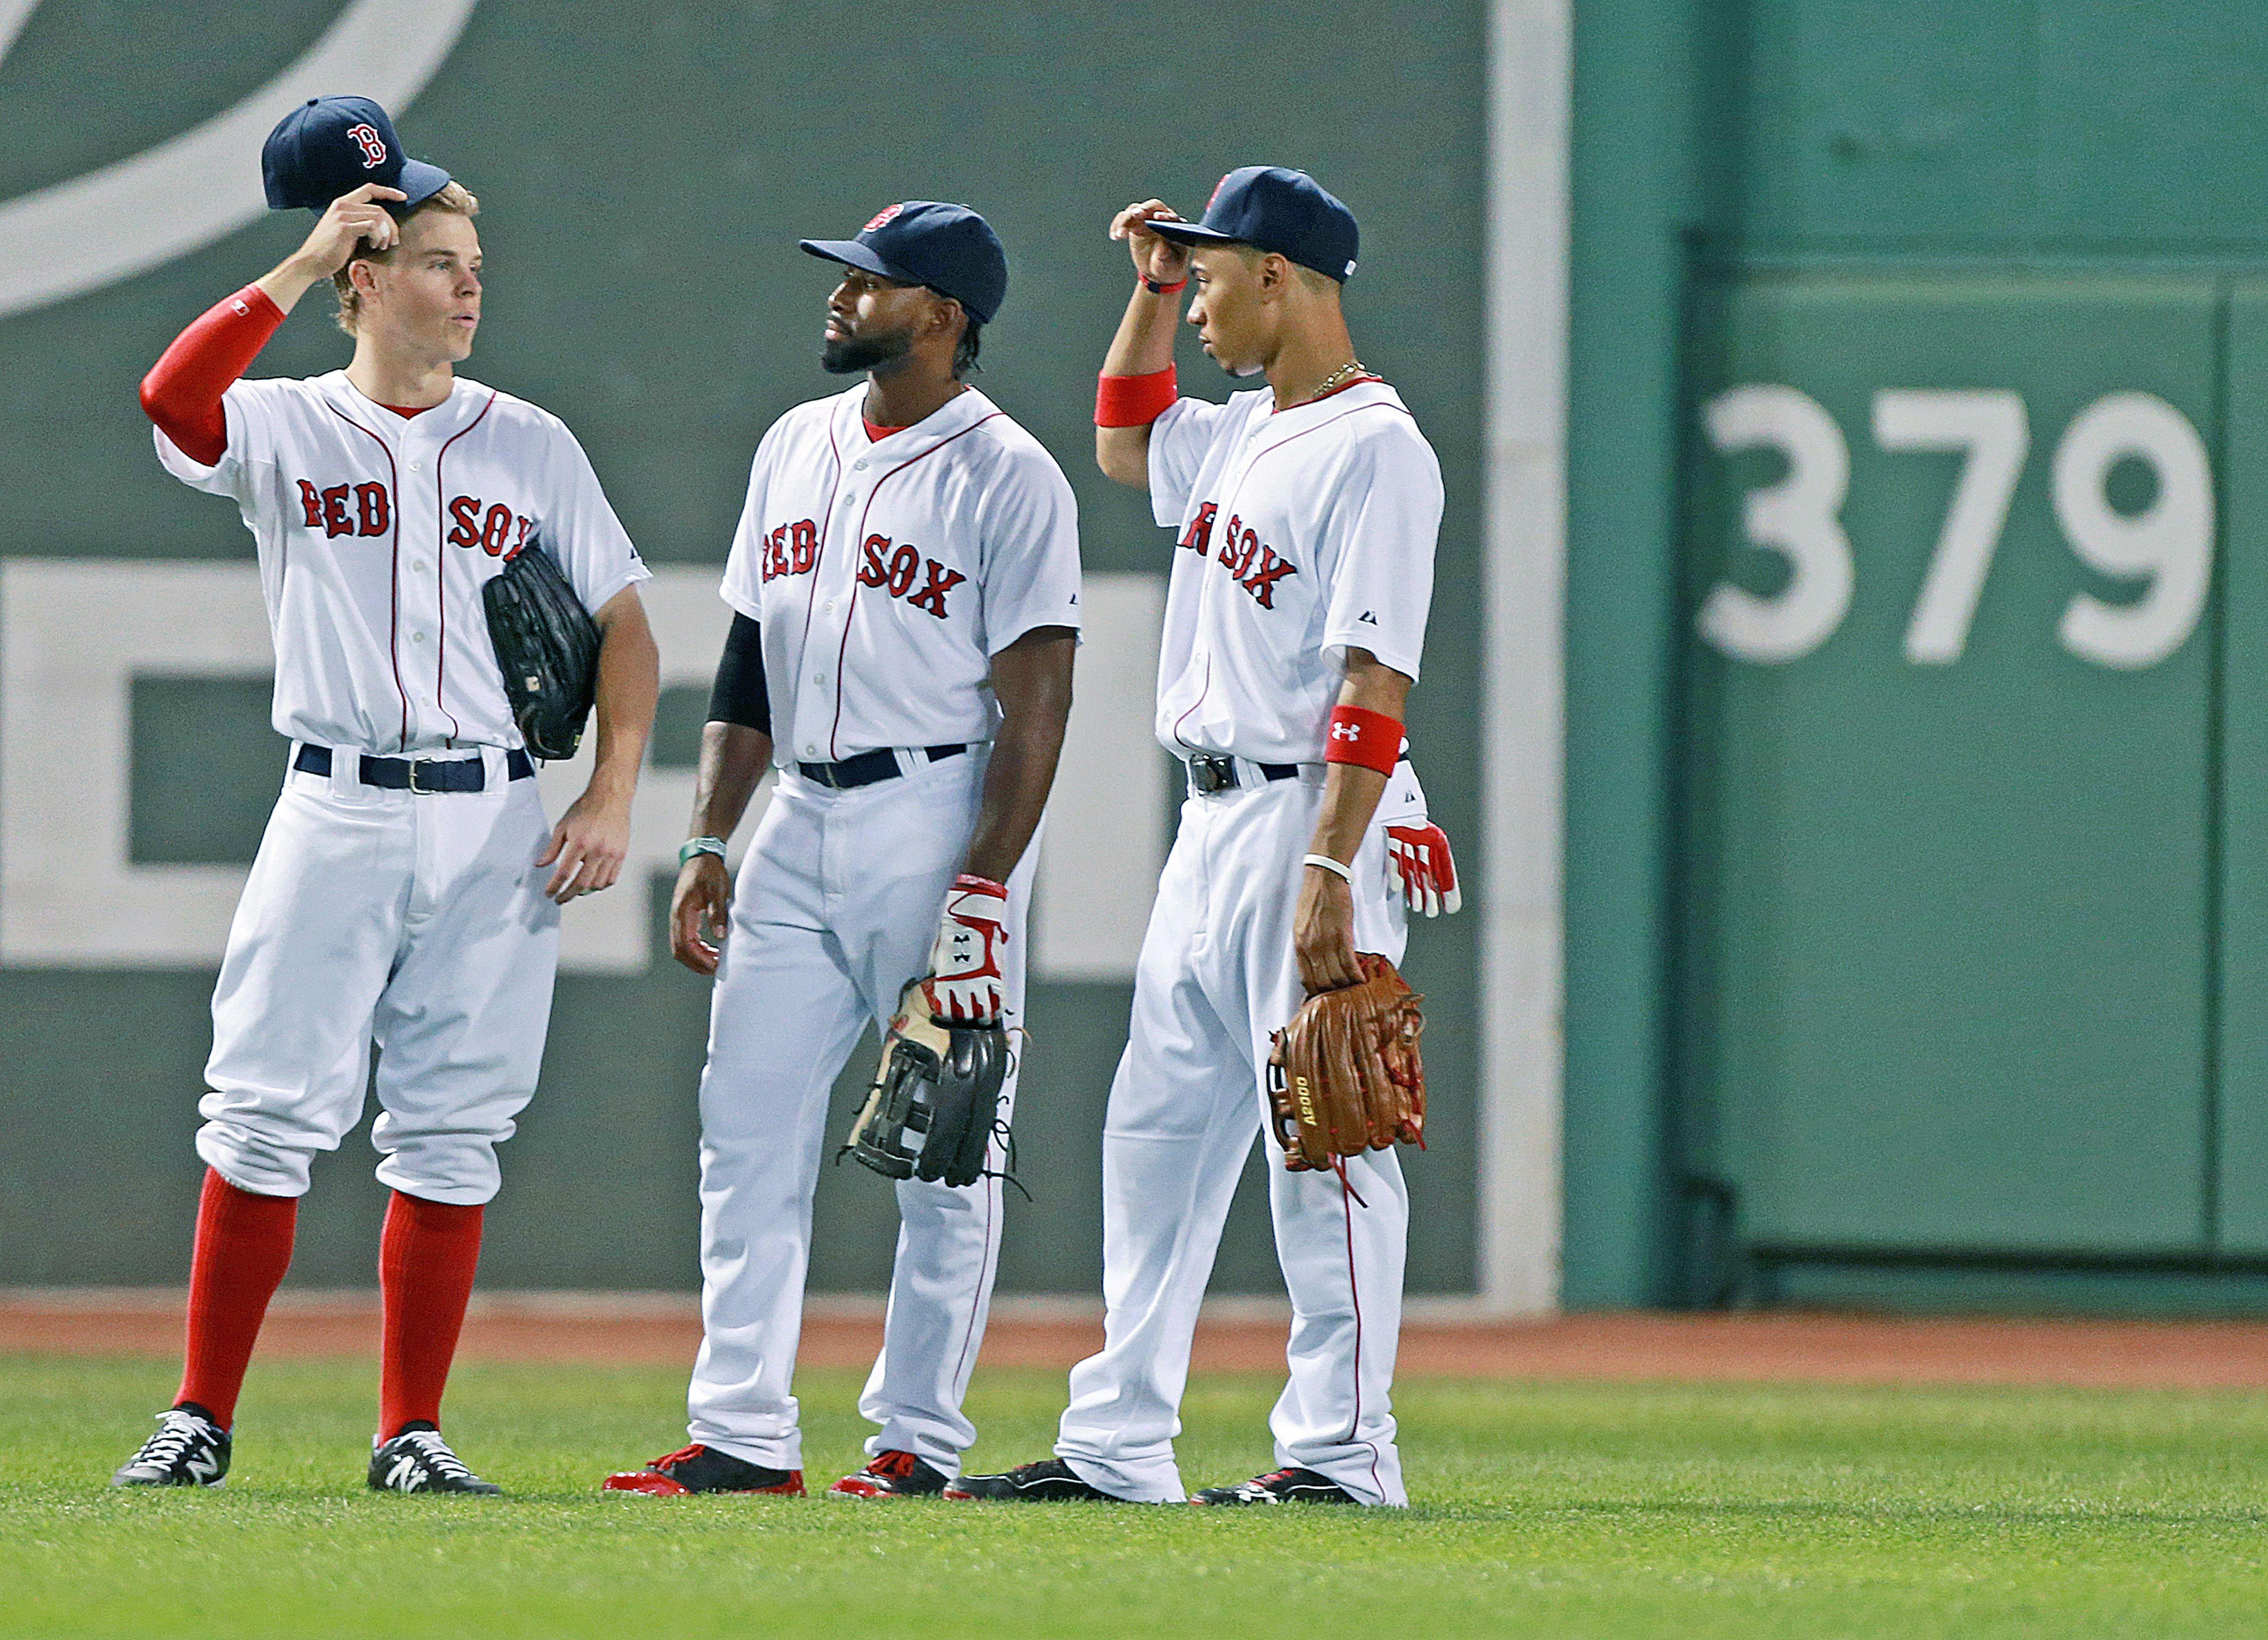 Sox Youngsters Struggling, But Don't Expect Changes